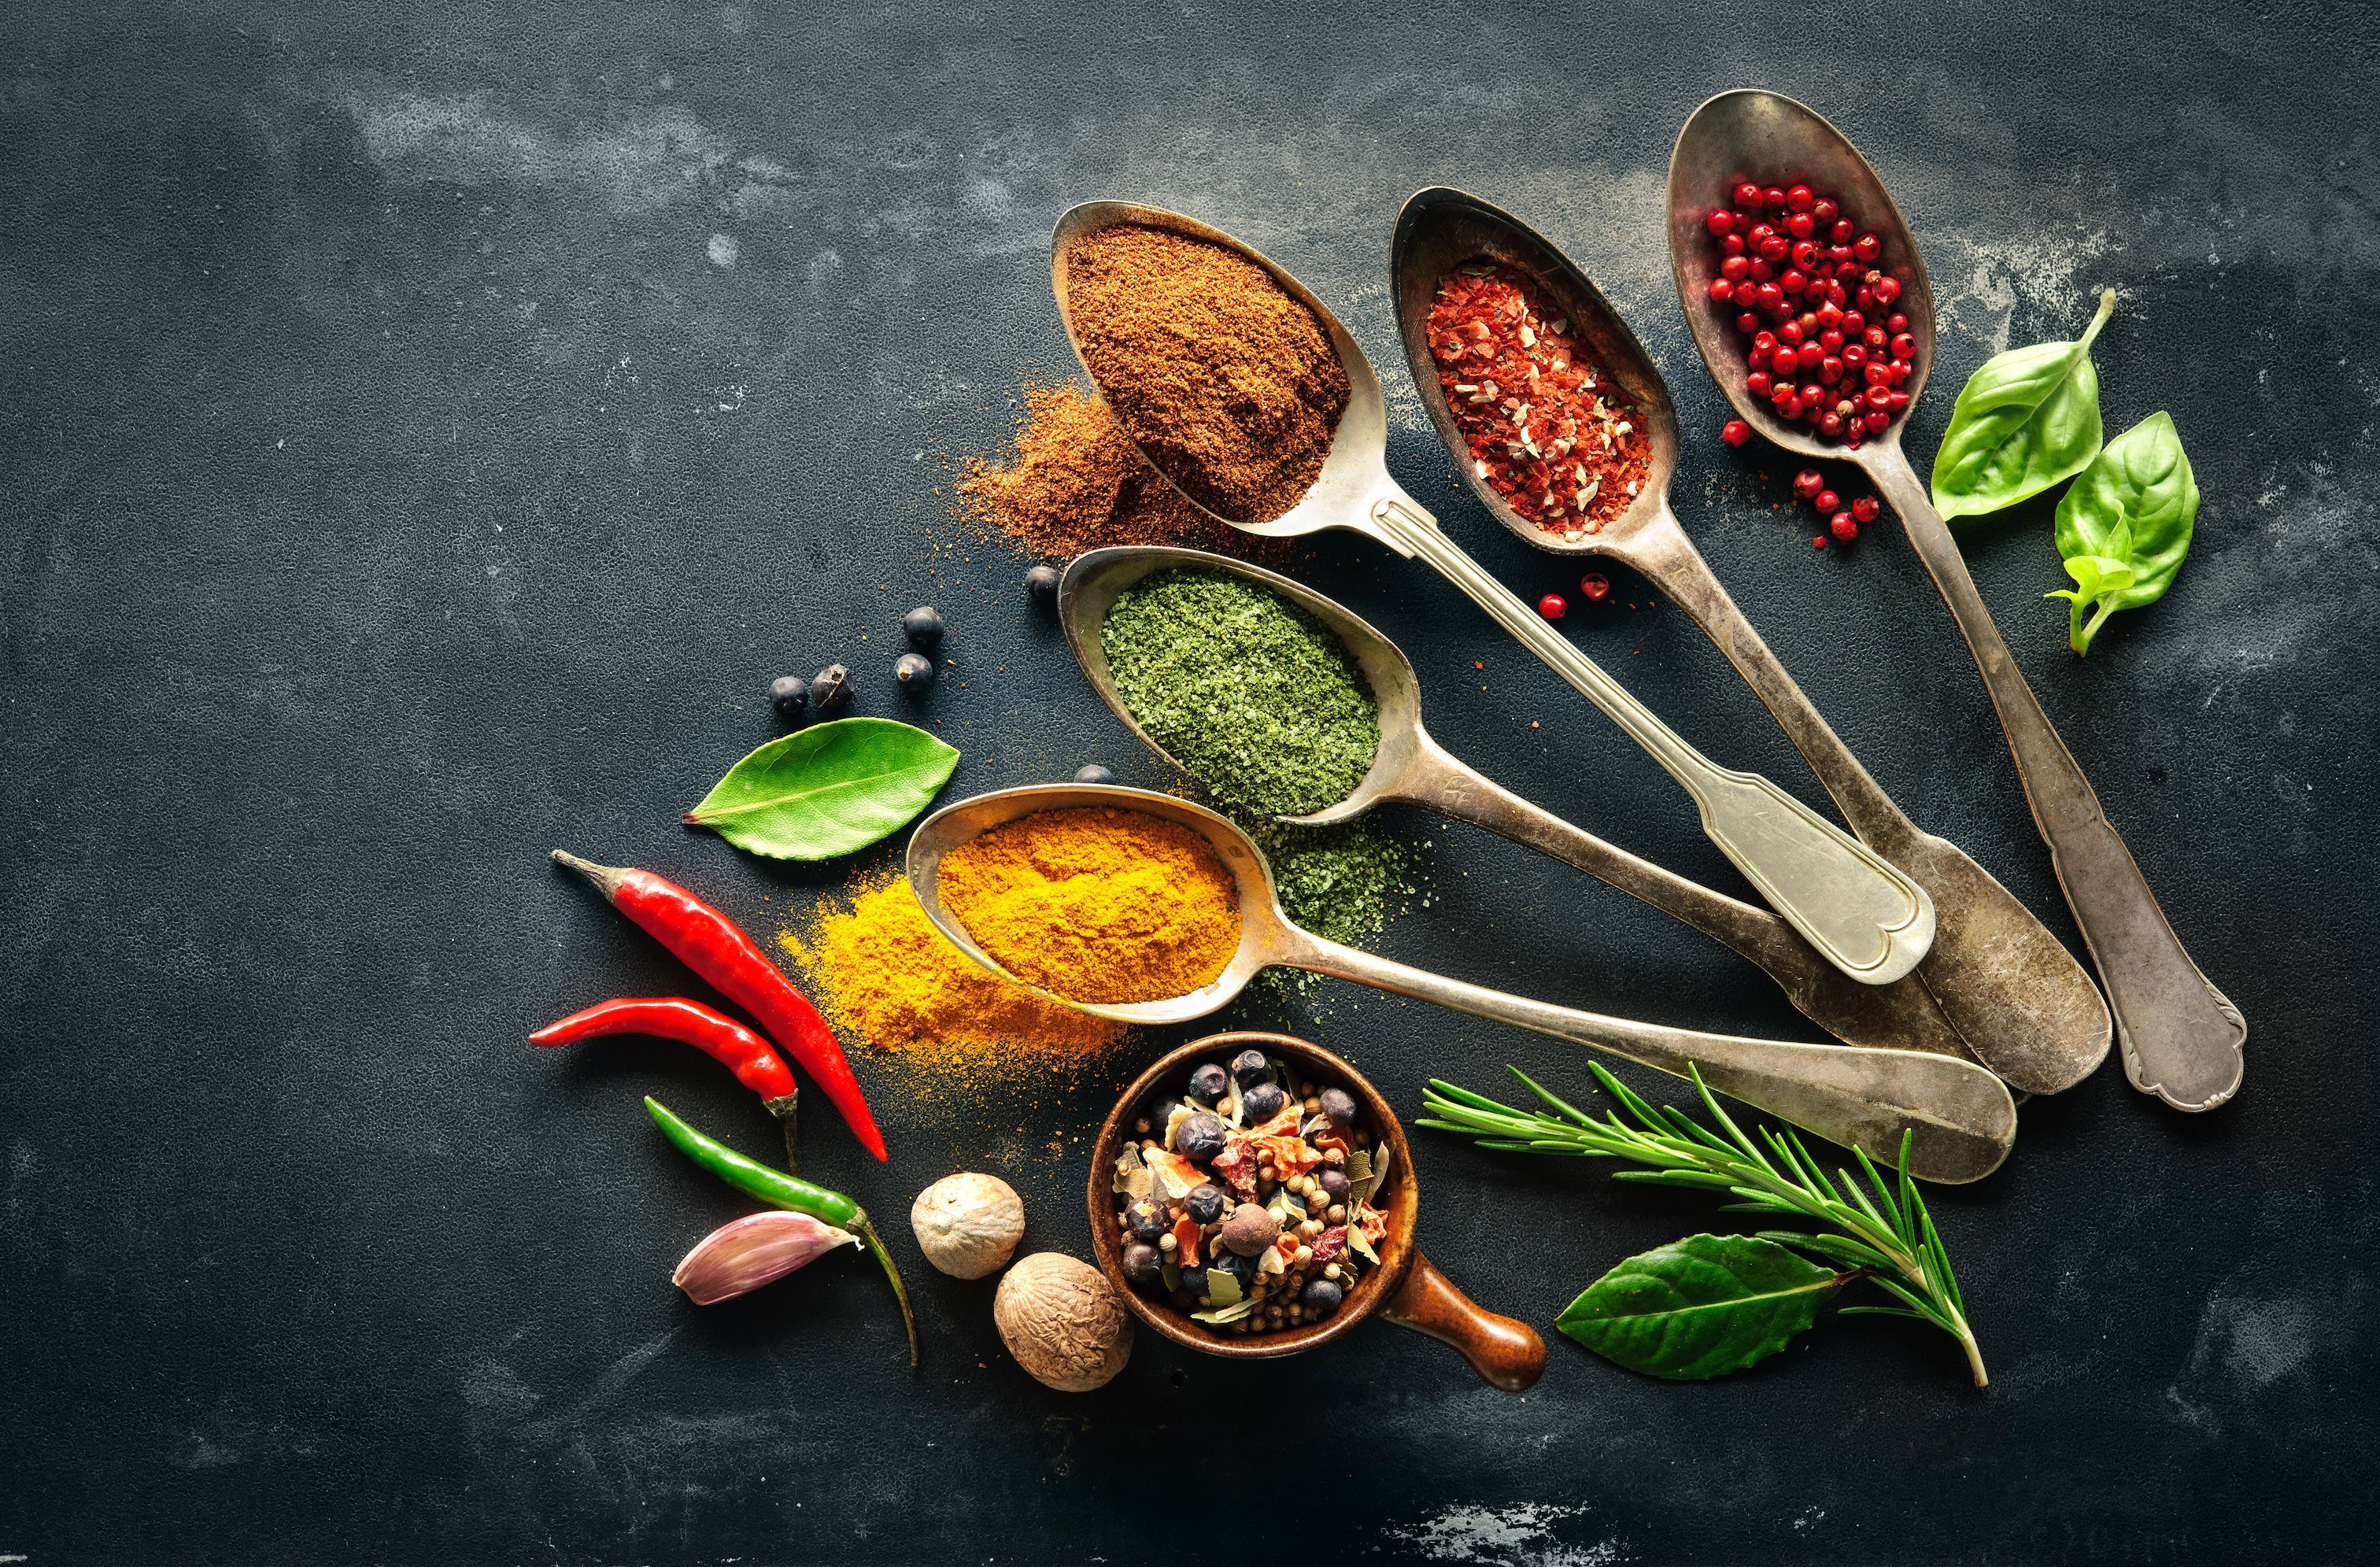 Cooking Wallpapers   Top Cooking Backgrounds   WallpaperAccess 3024x1991